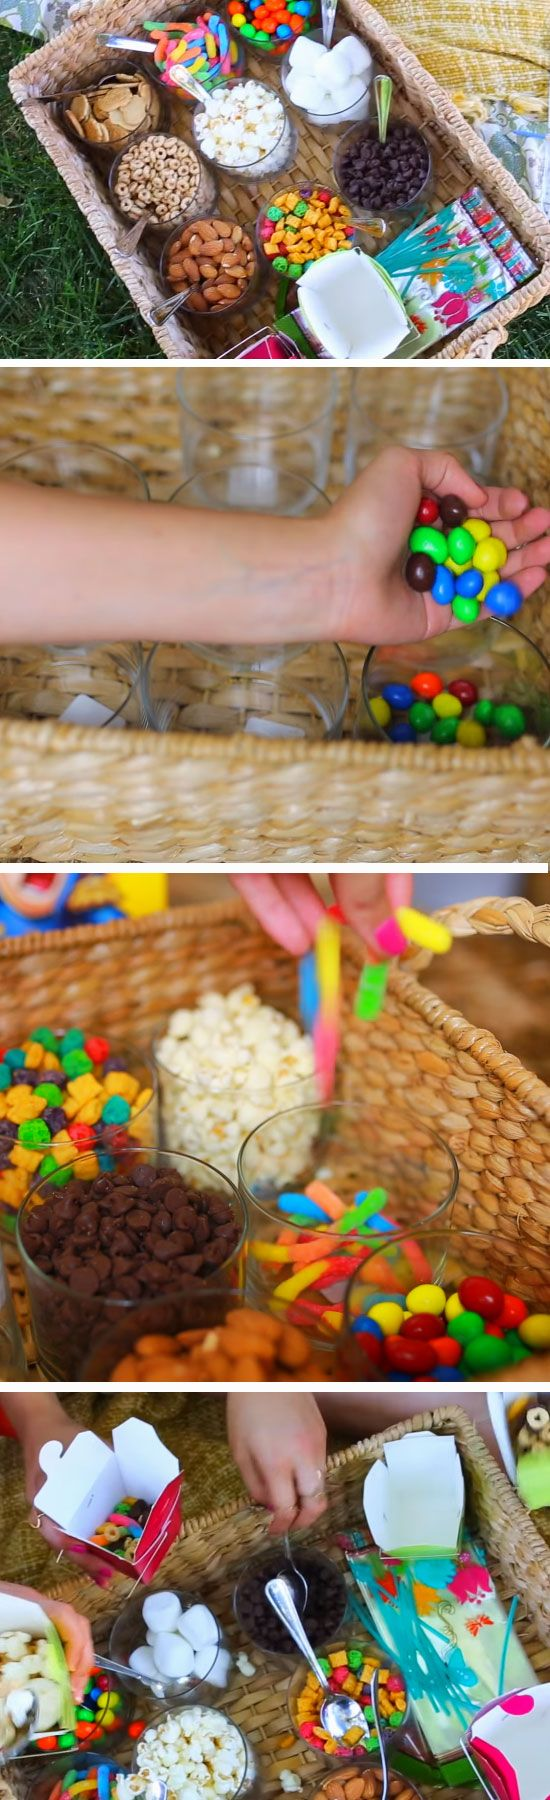 Trail Mix Bar | 9 DIY Summer Backyard Party Ideas for Kids that will get the party started!